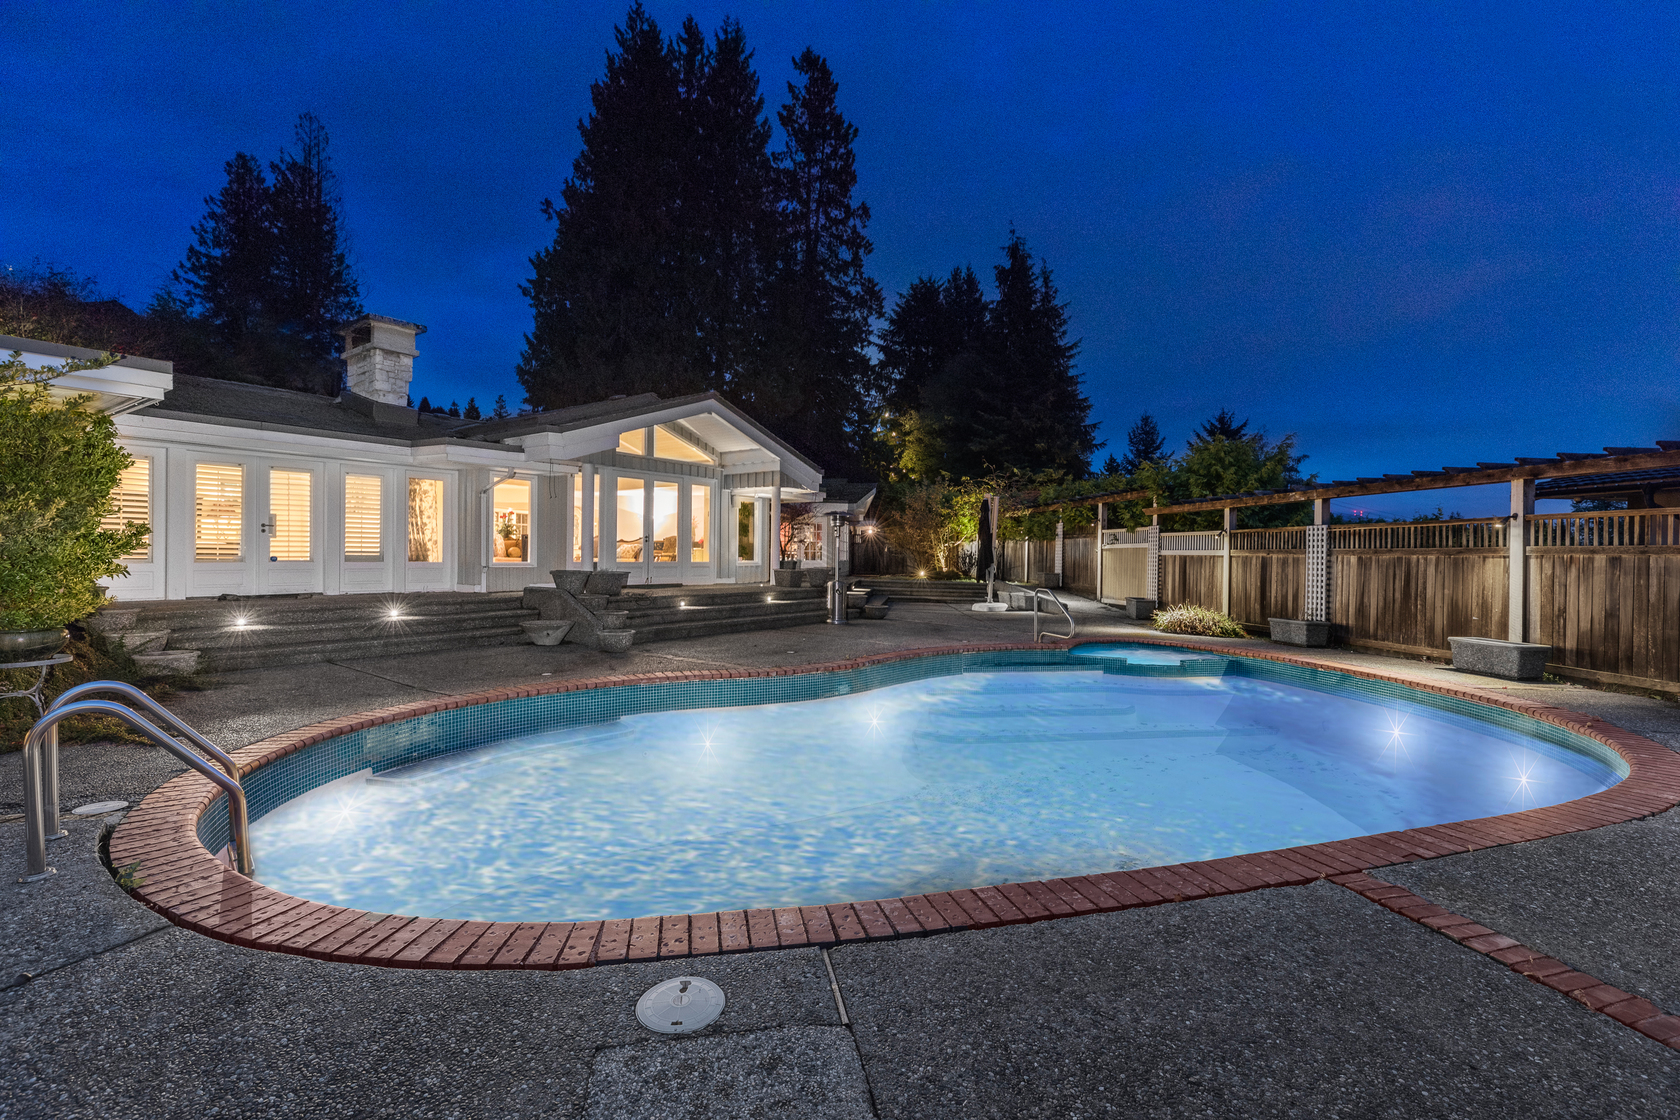 untitled-1 at 888 Pyrford Road, British Properties, West Vancouver